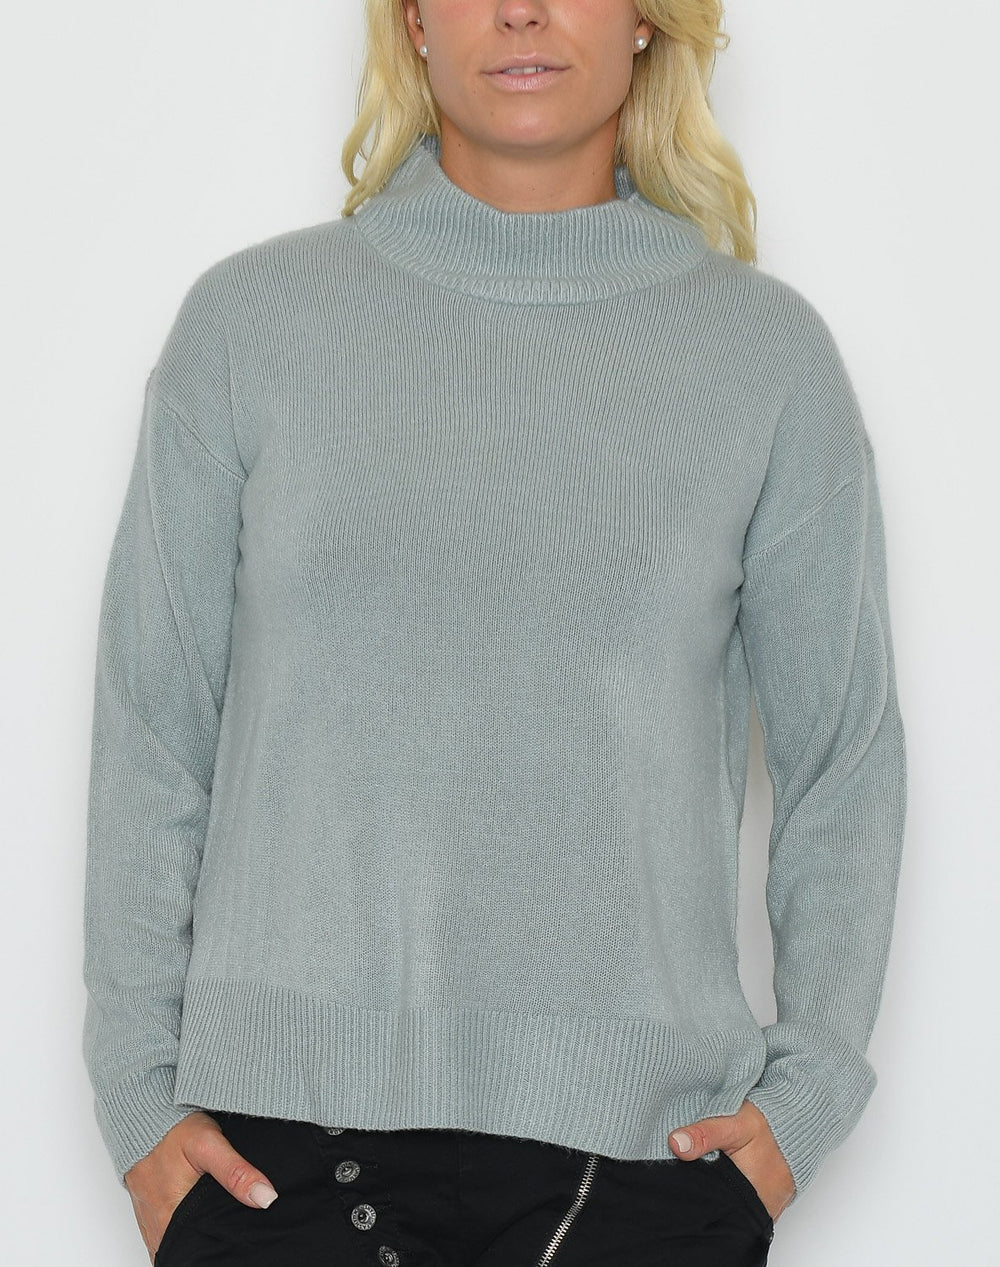 B.young Malea pullover 3 slate - Online-Mode